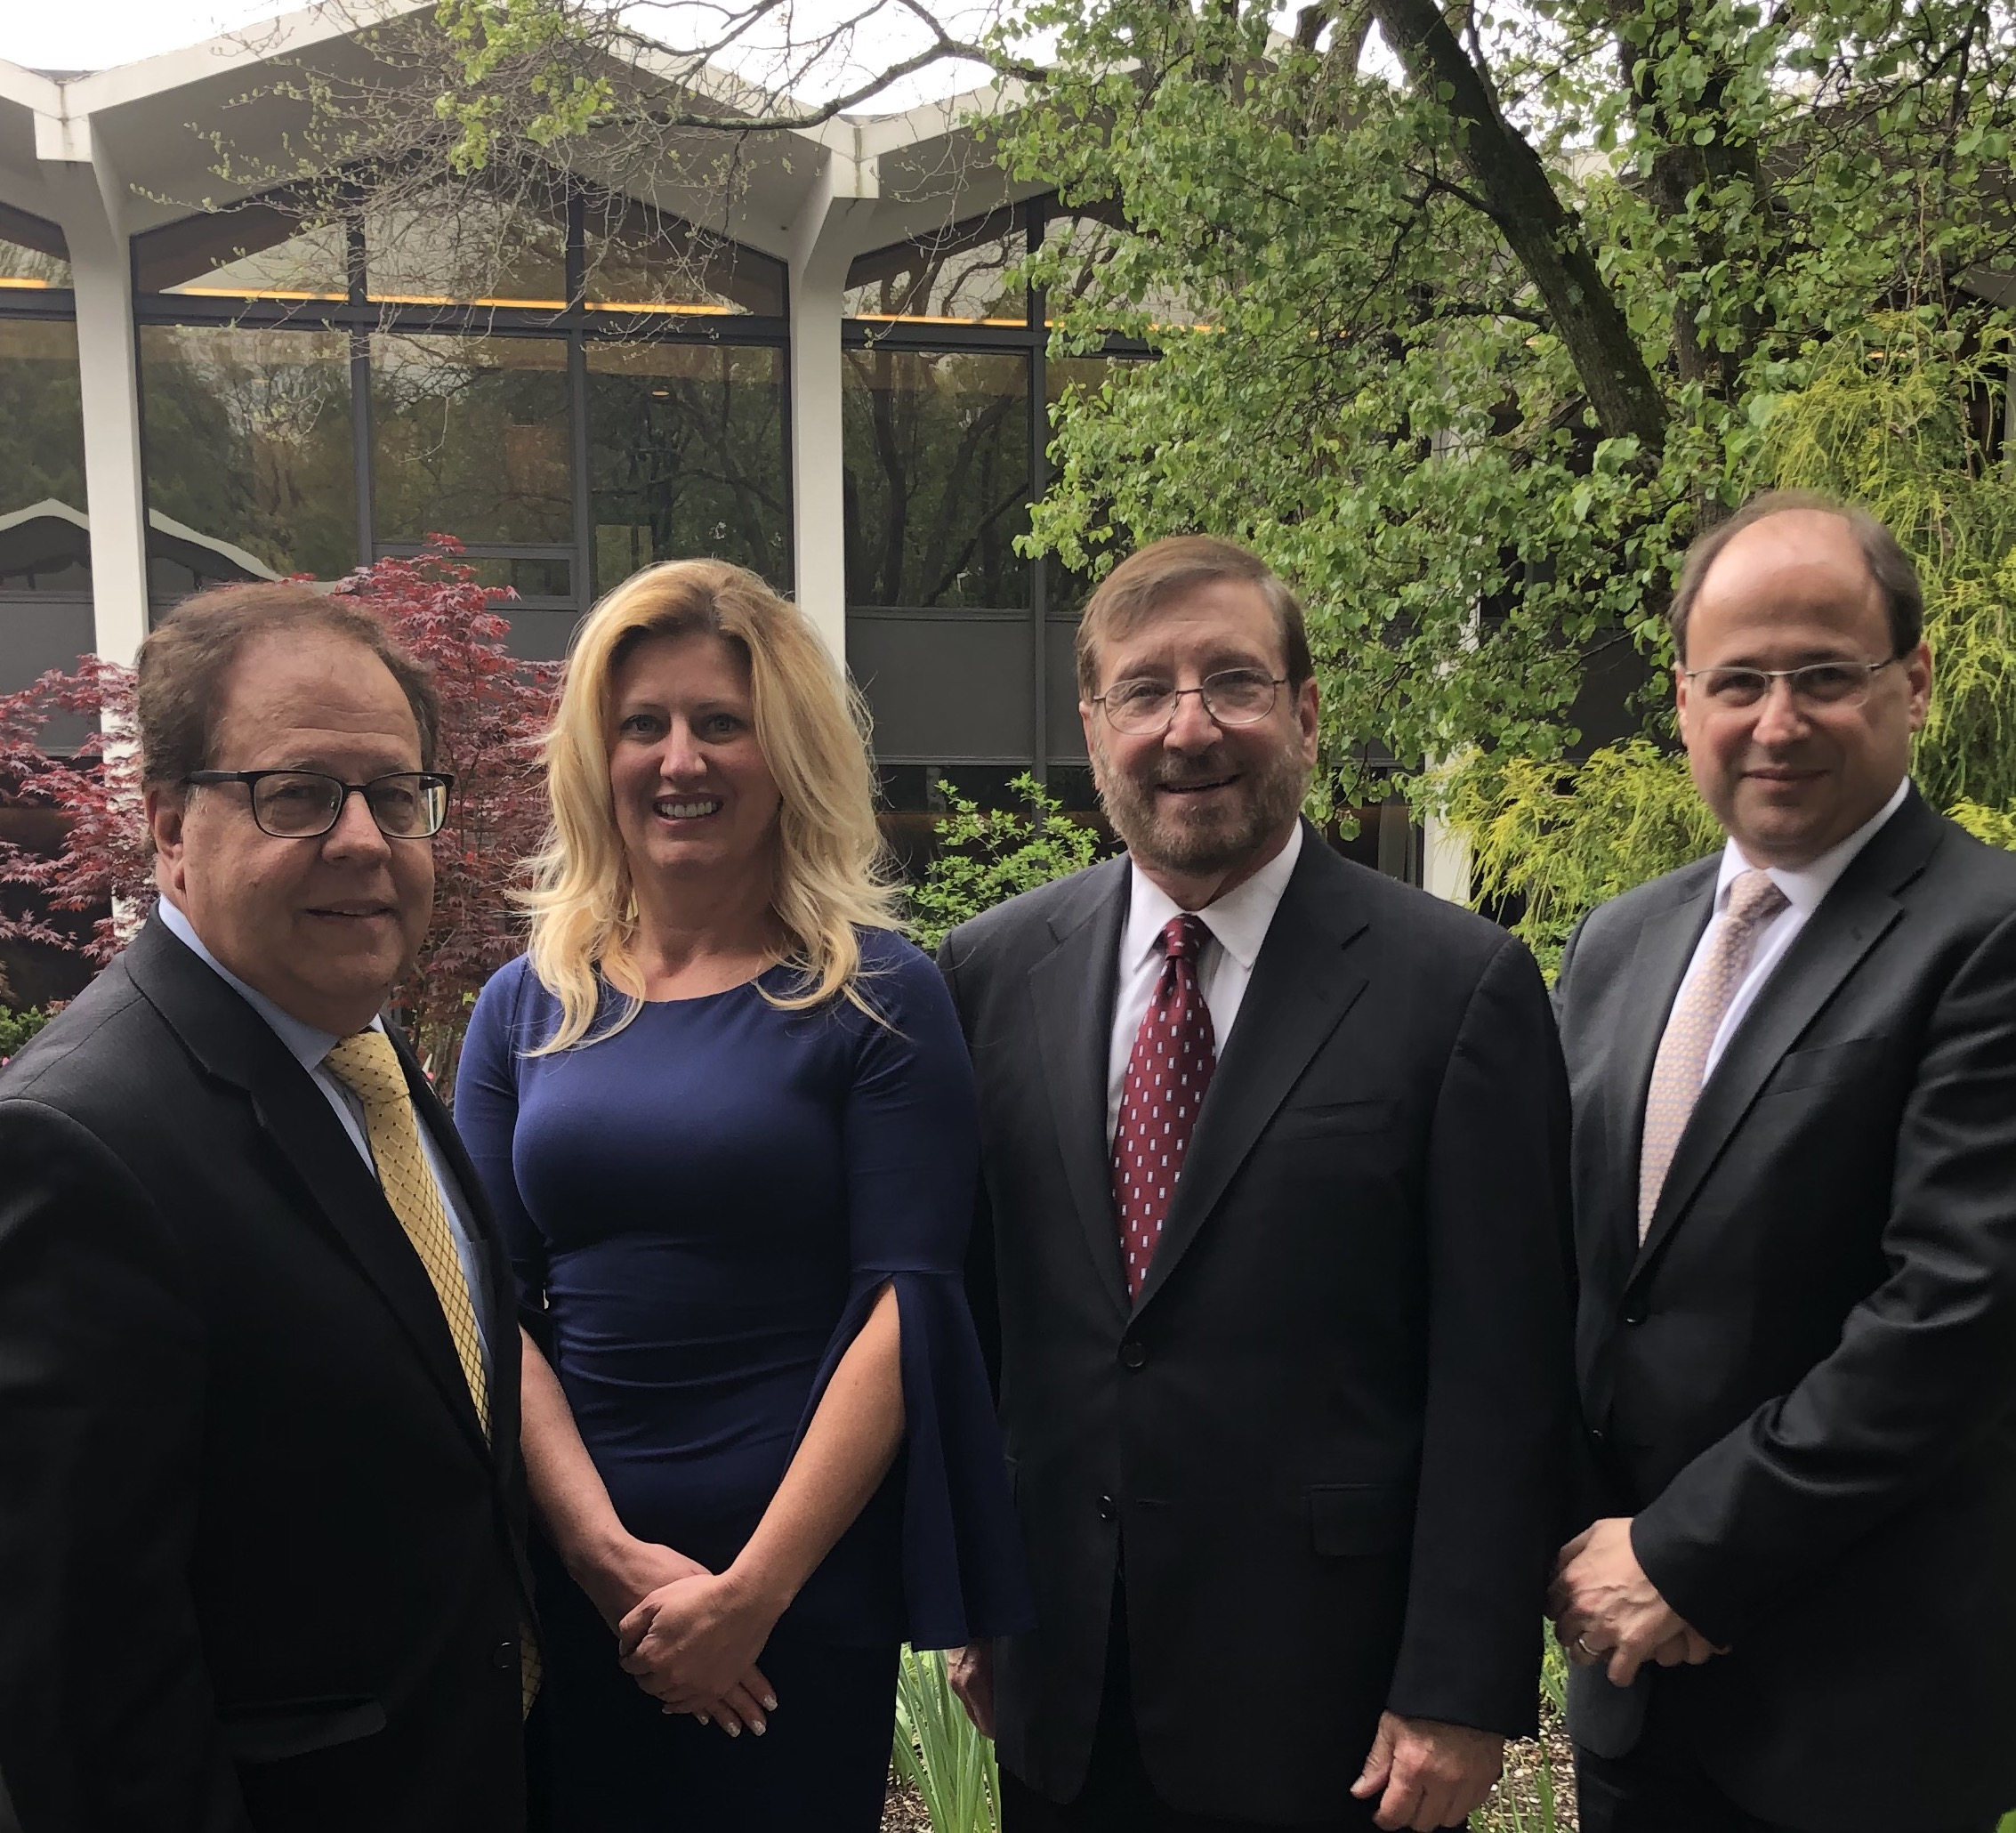 Assemblyman Abinanti met with Amanda Muth, Dr. Robert Amler, and Dr. David Markenson about NYMC's Disaster Medicine Program.